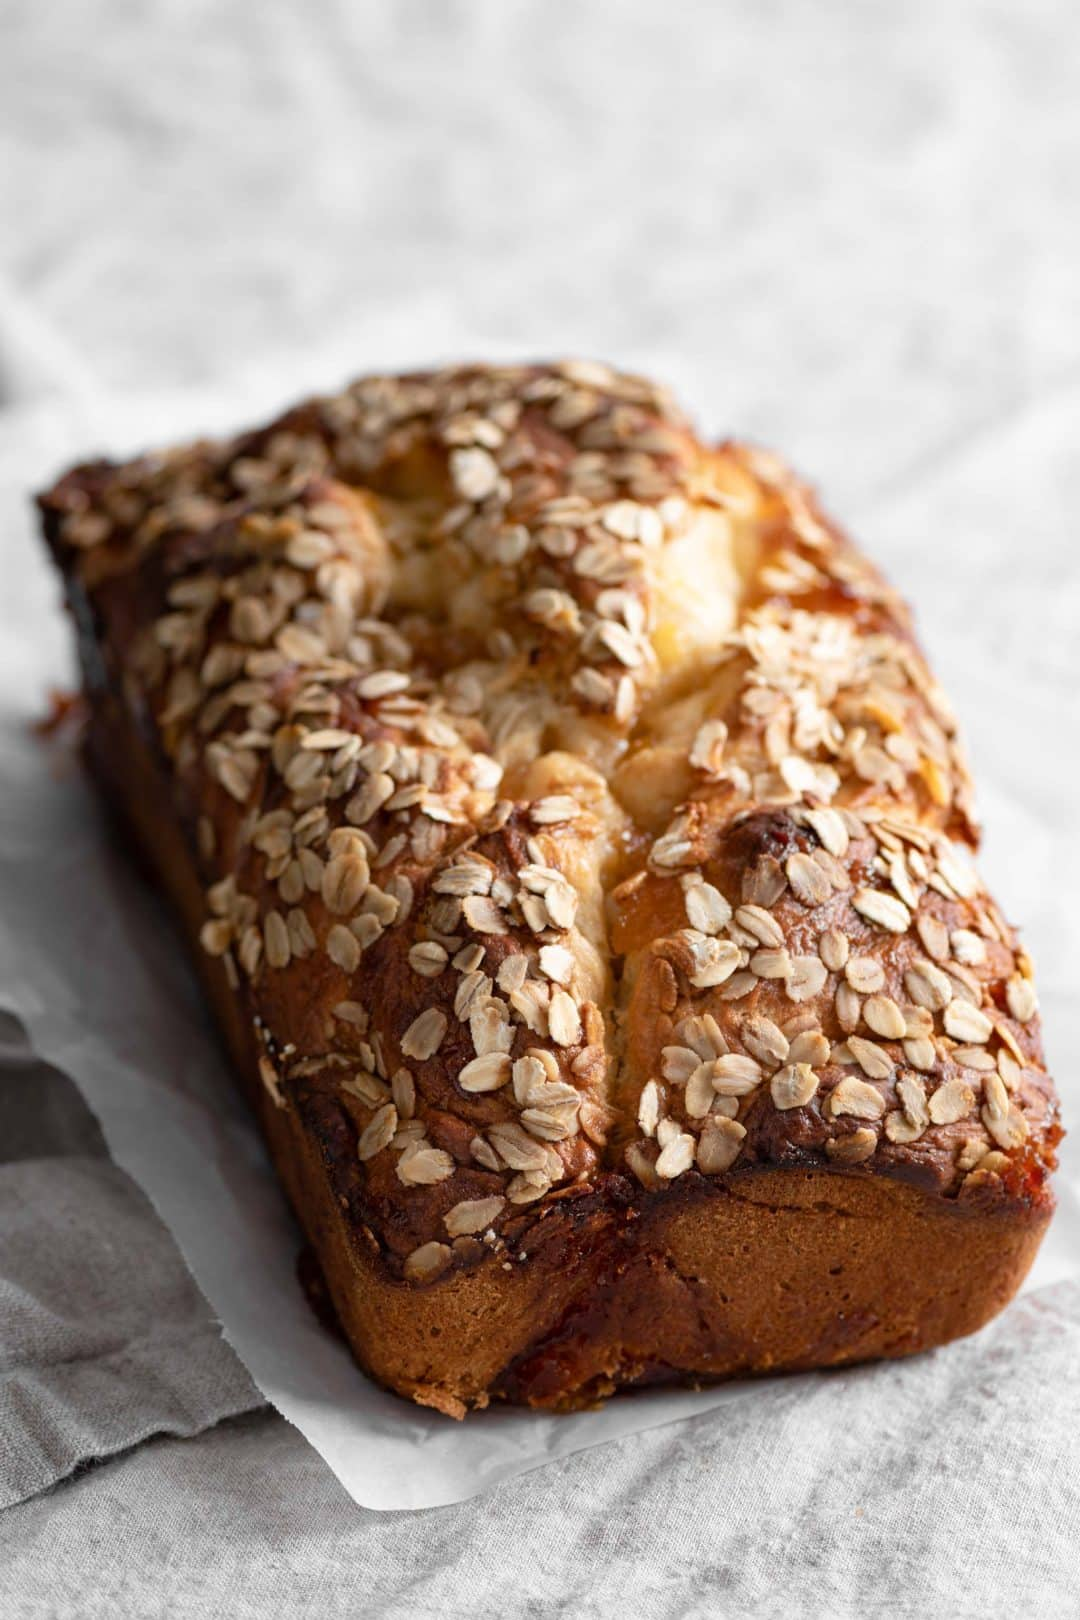 Peach Brioche Bread Loaf with Oats